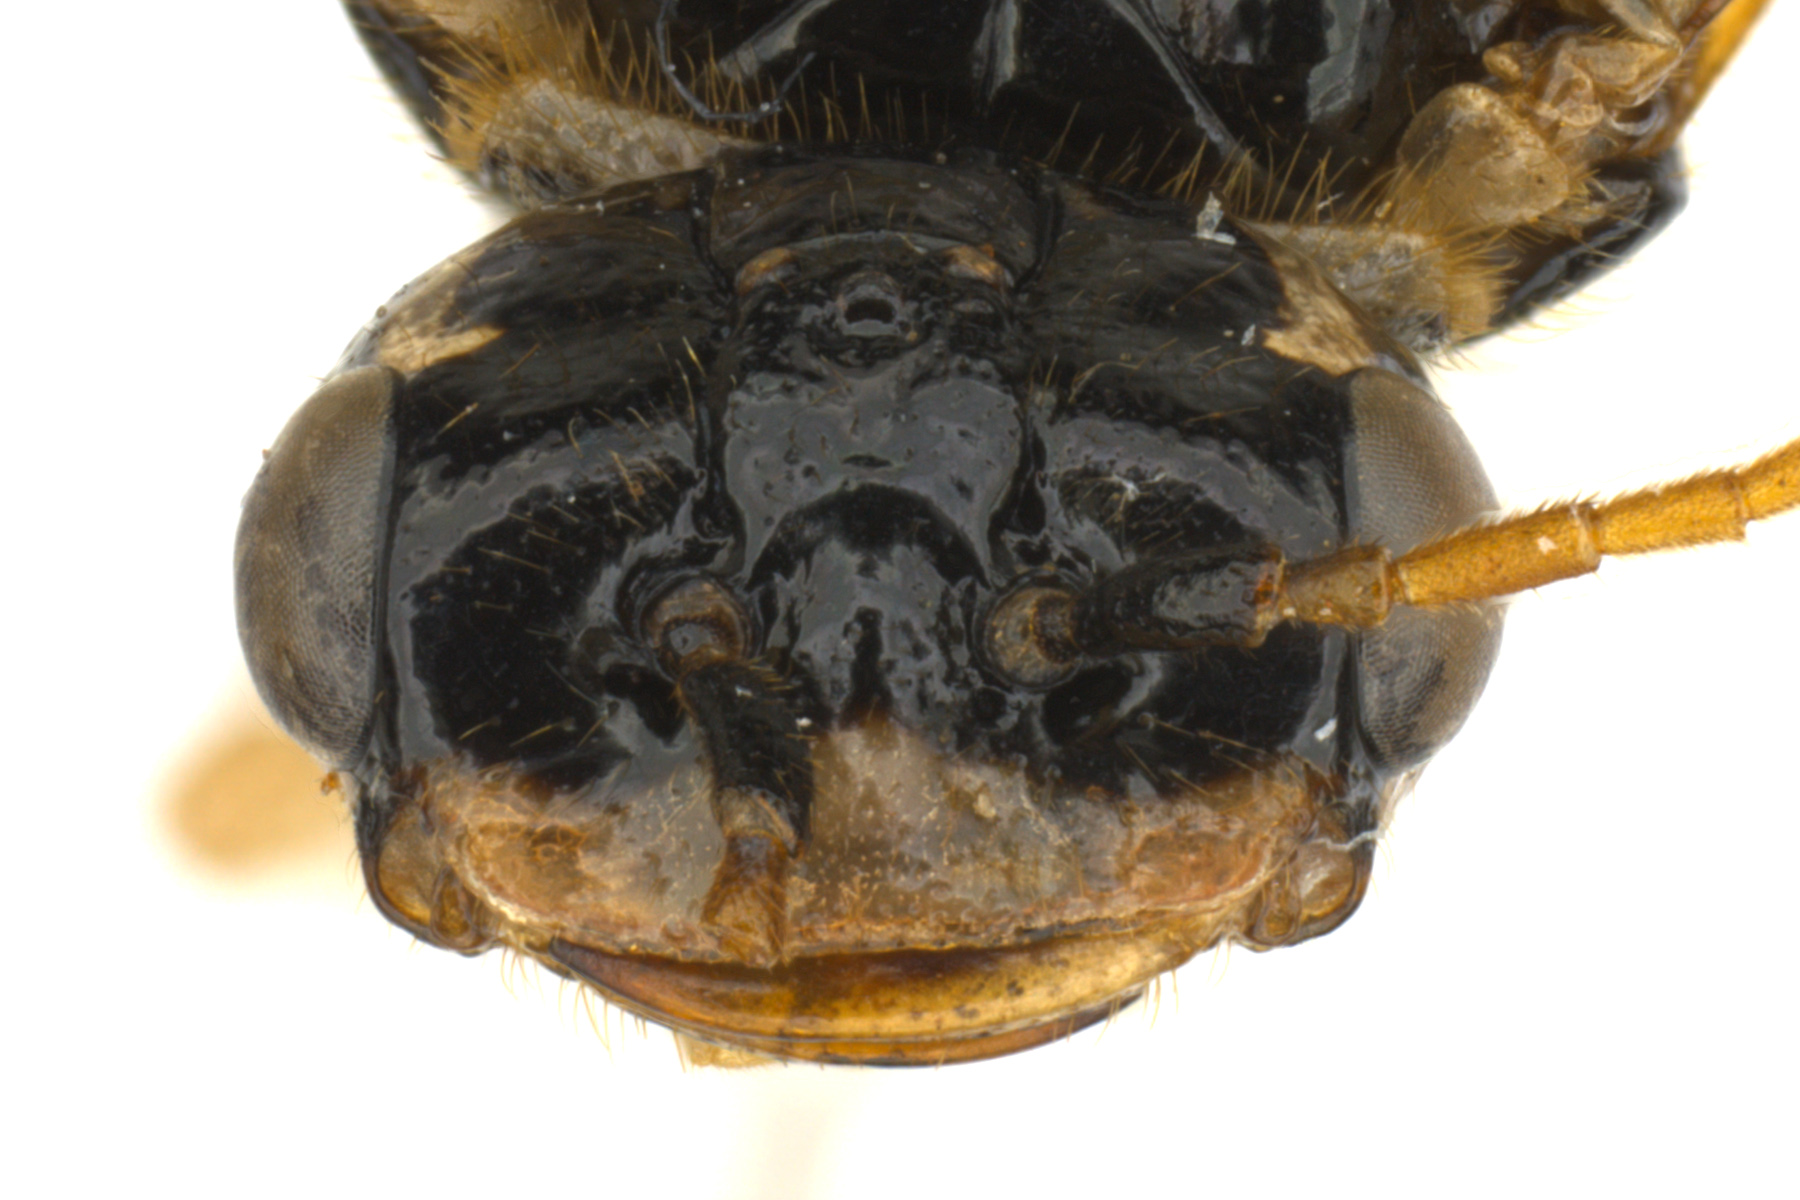 Pamphilius pacificus female face; photo by J. Orr, WSDA